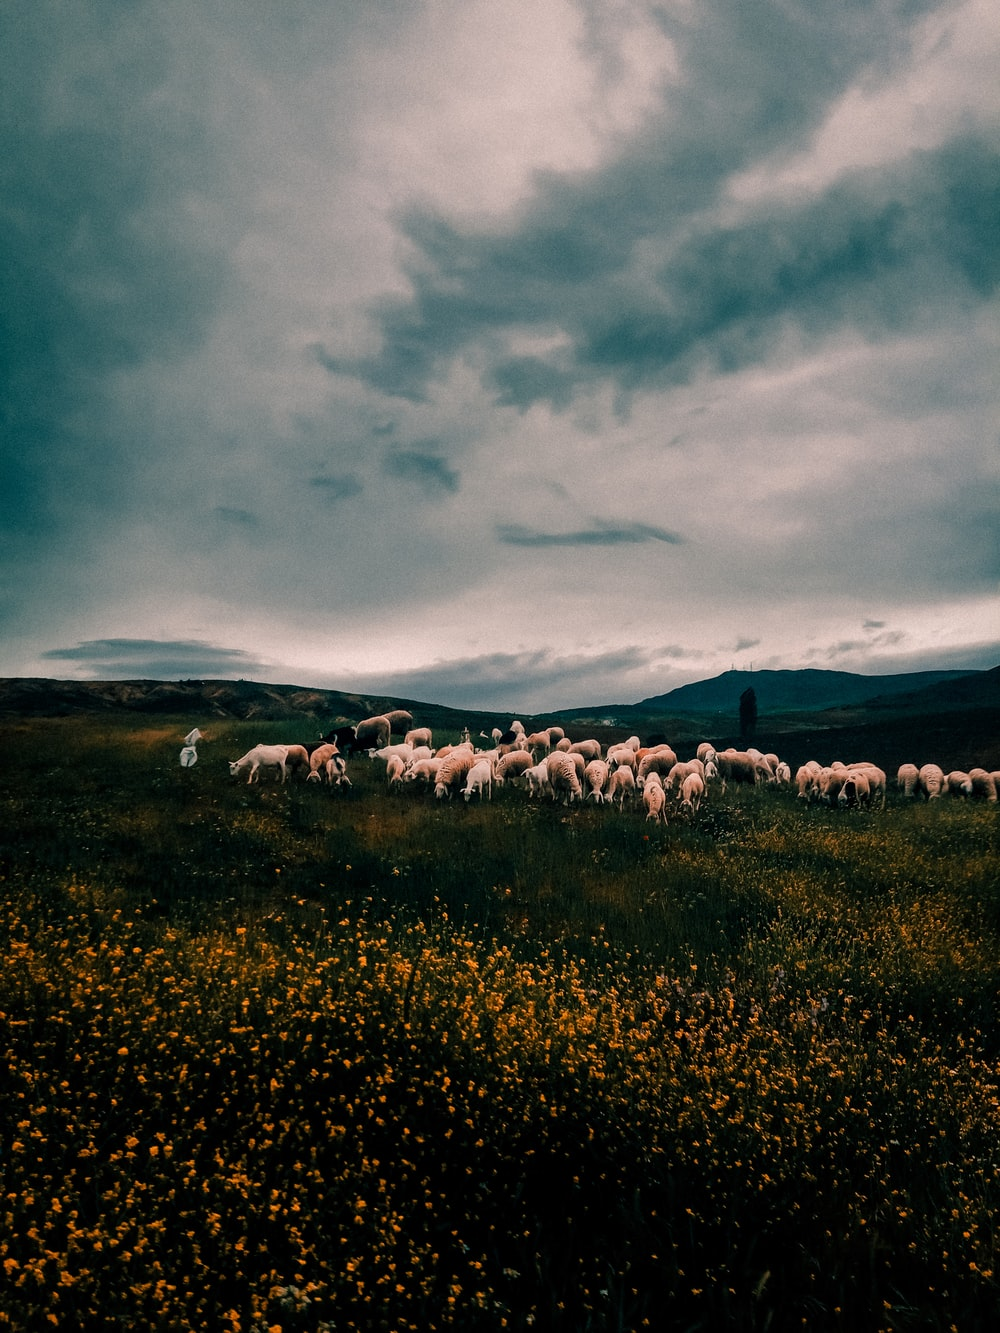 white sheep on green grass field under cloudy sky during daytime